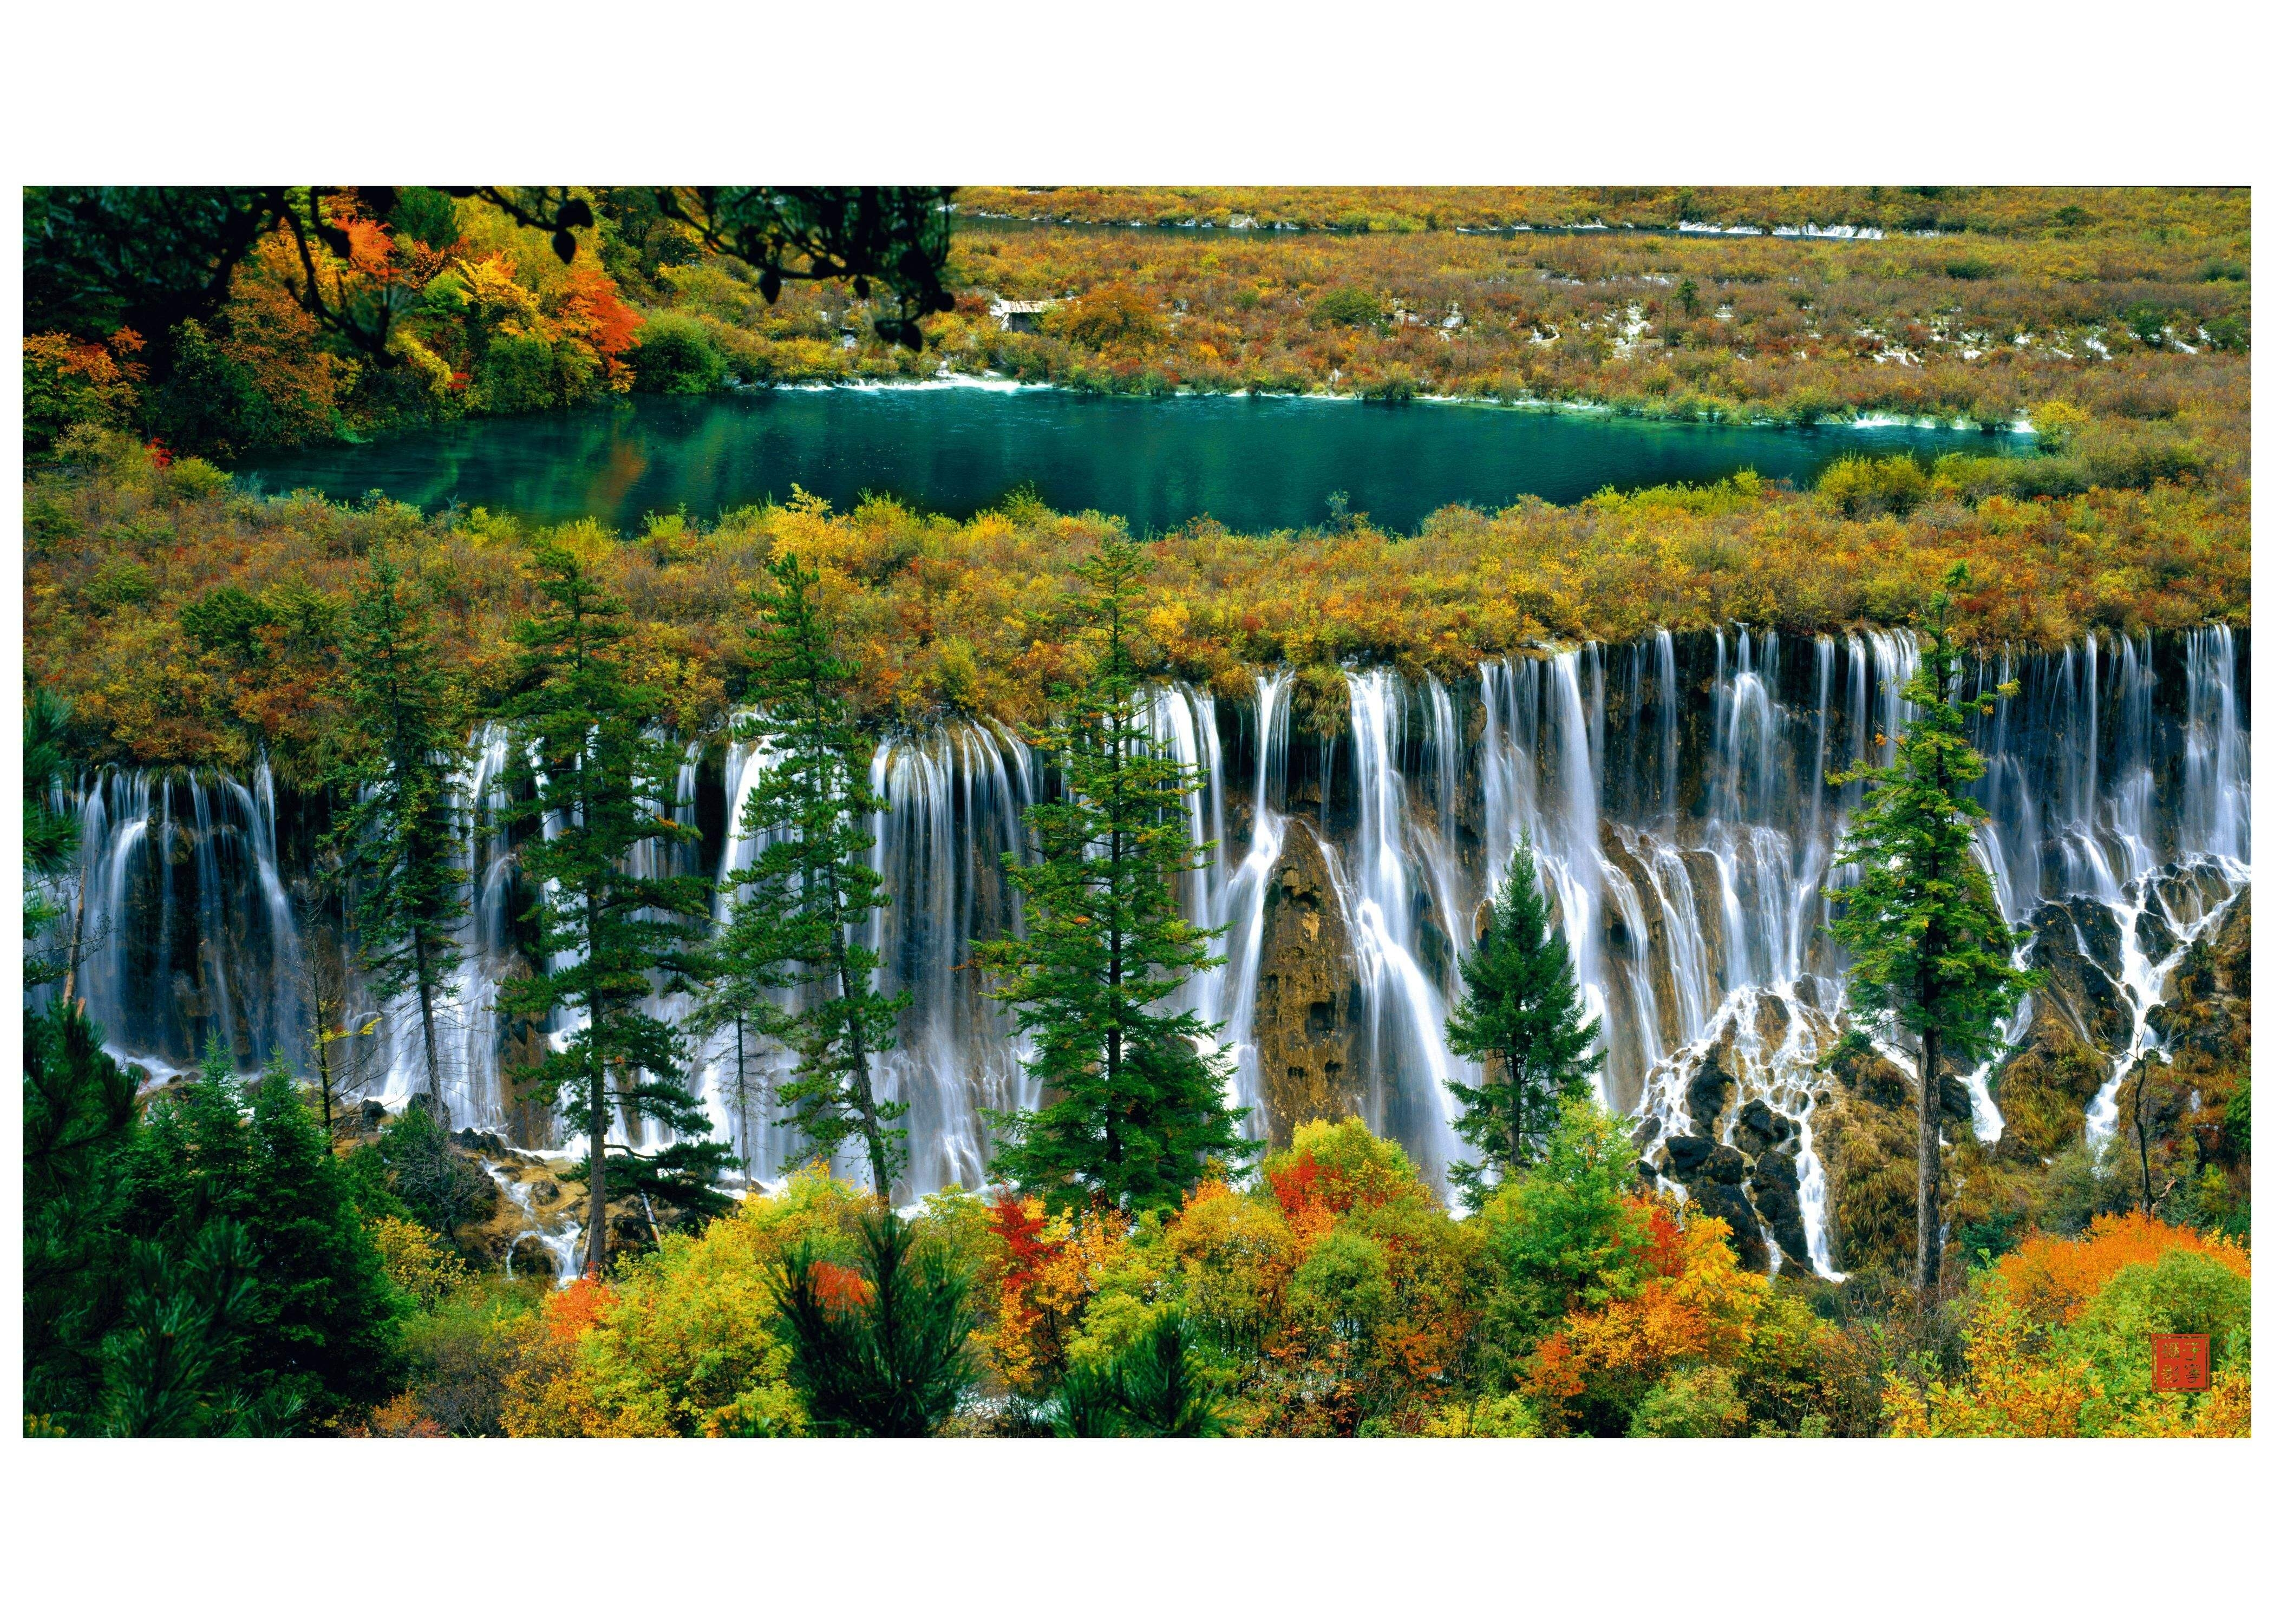 waterfall in jiuzhaigou